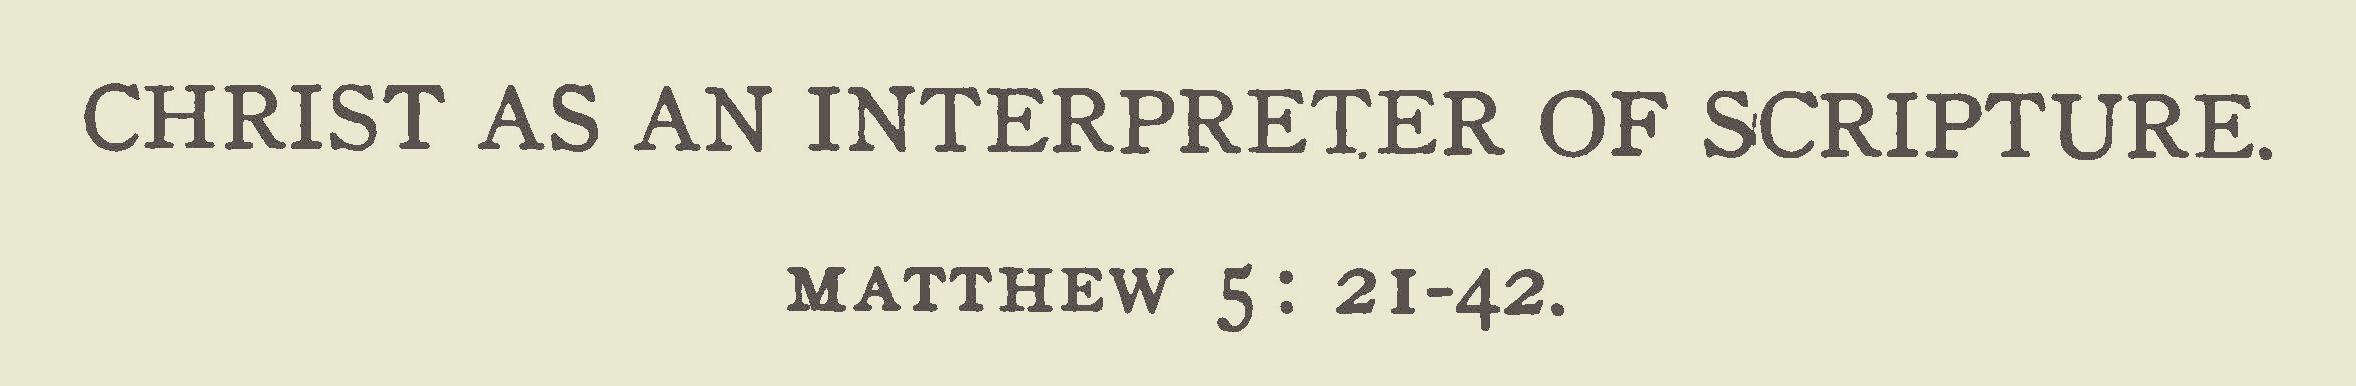 McPheeters, William Marcellus, Christ as an Interpreter of Scripture Title Page.jpg